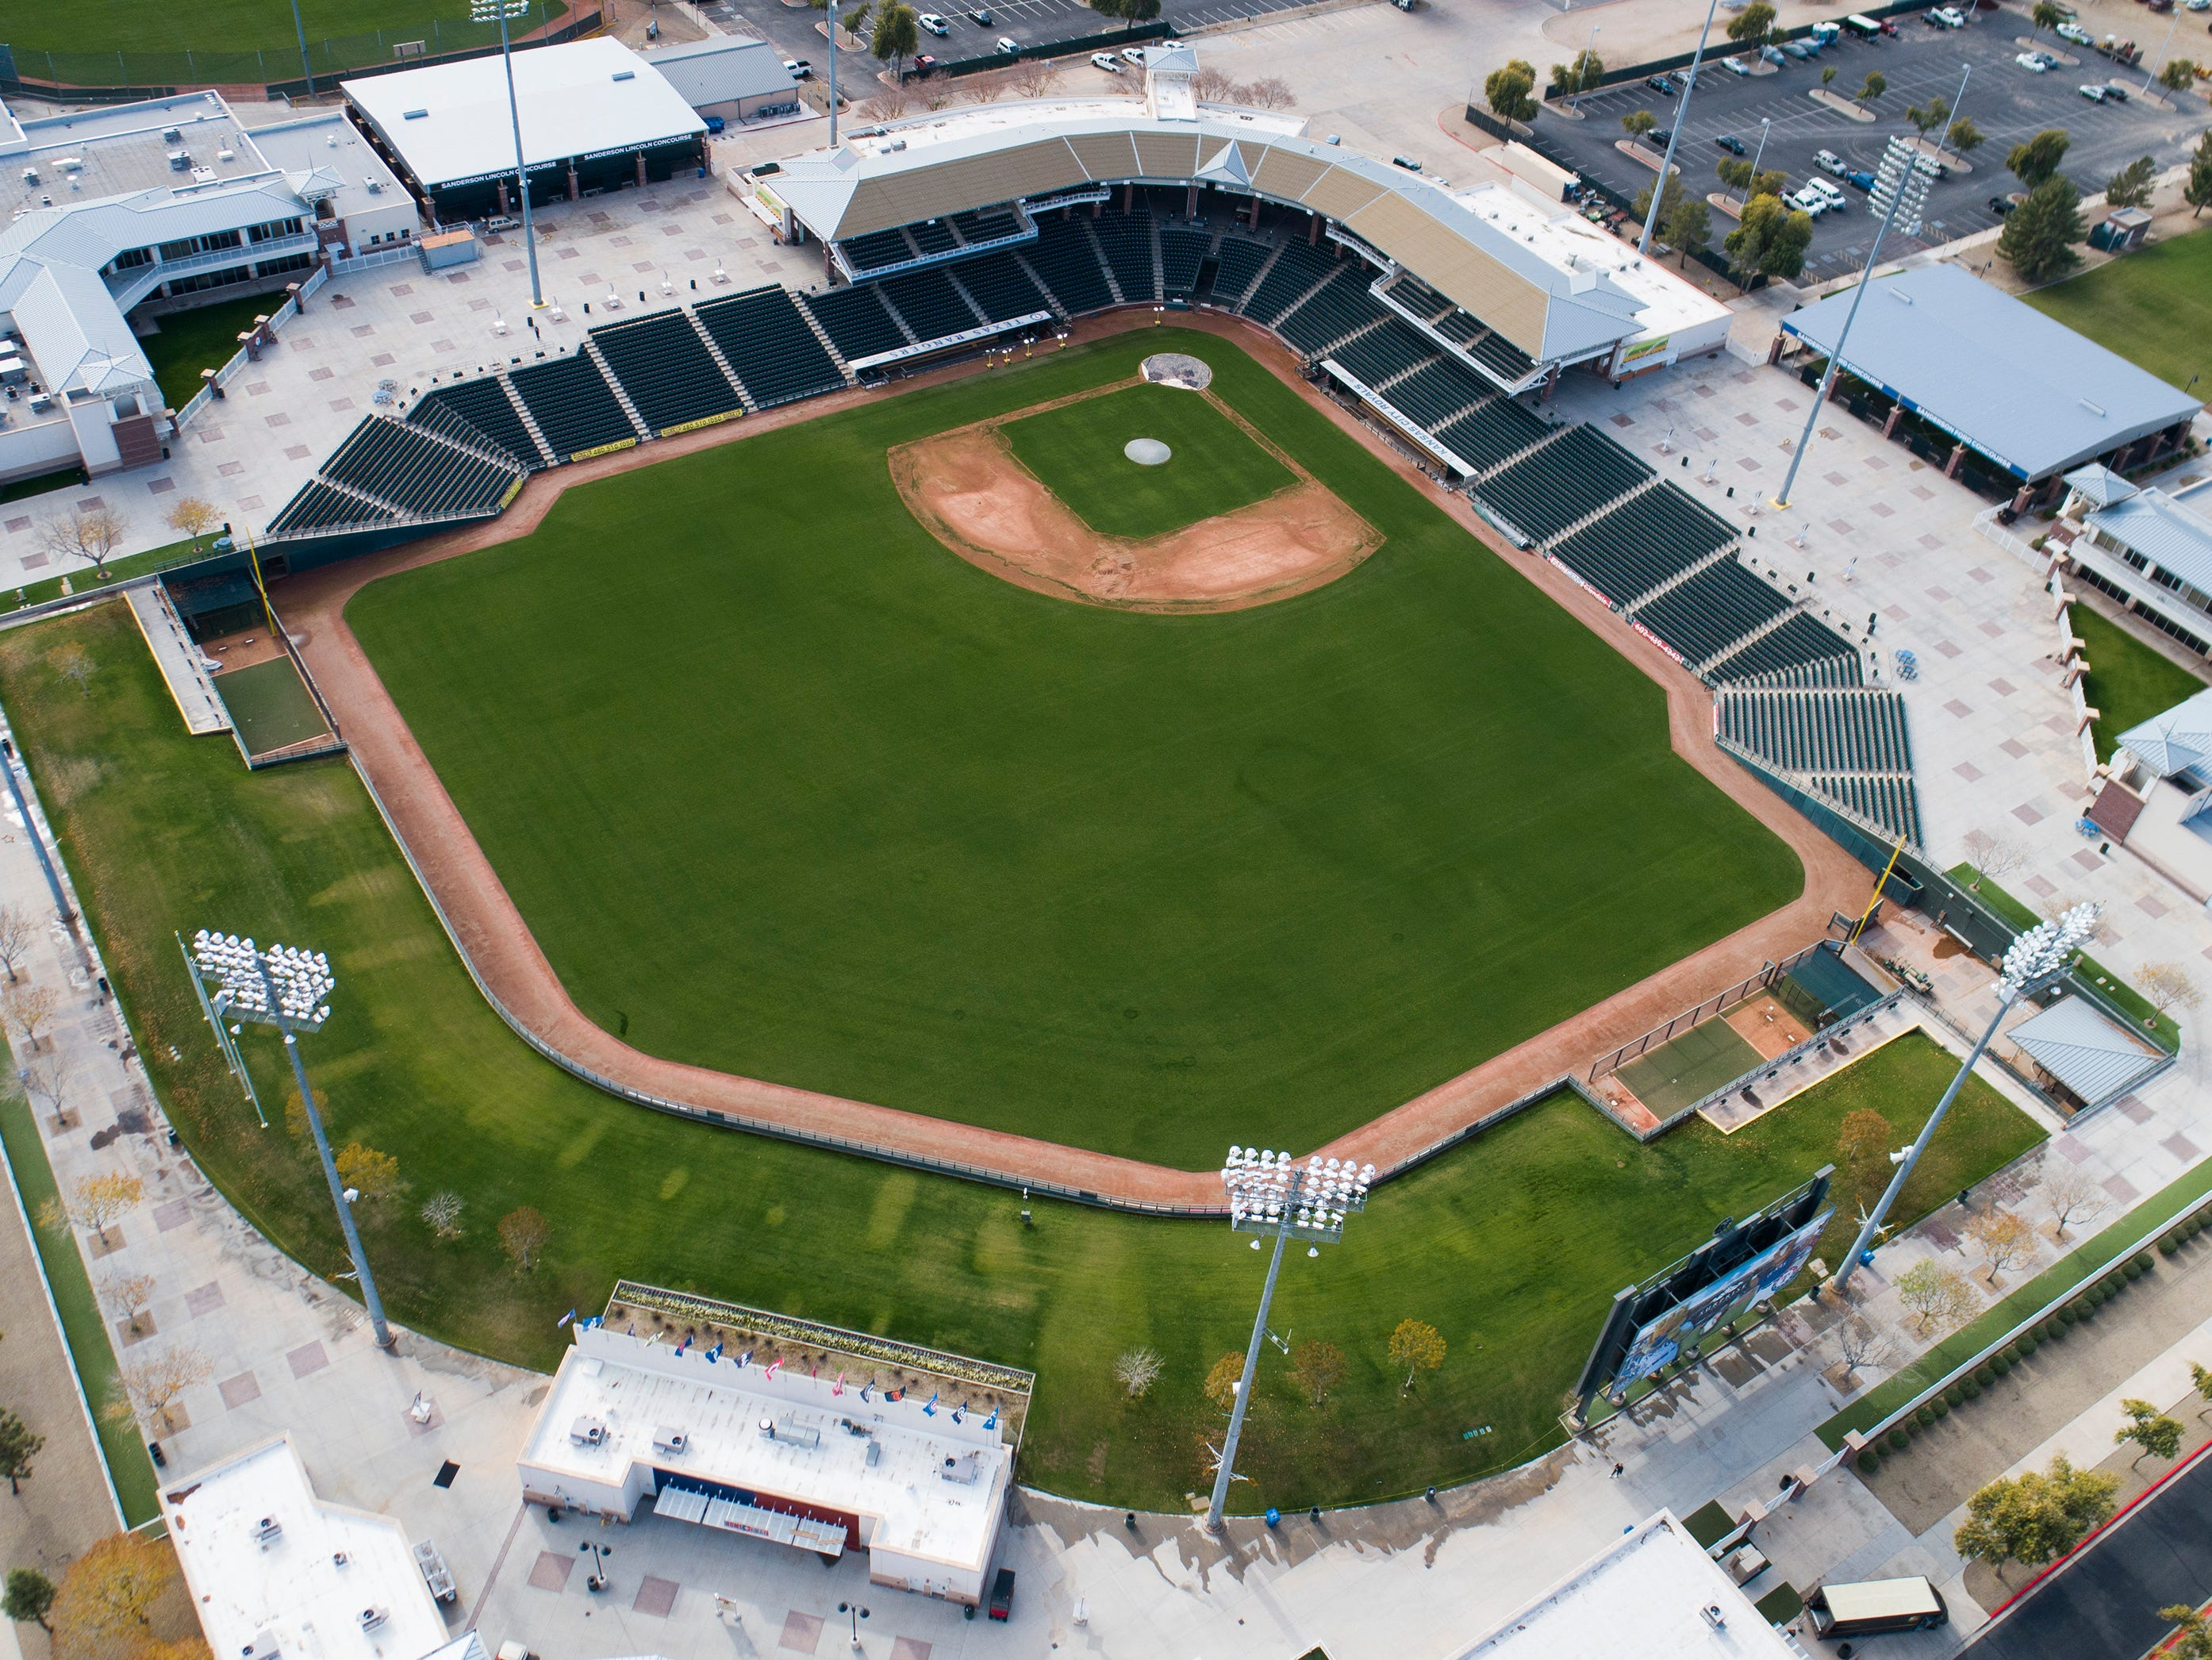 Aerial drone view of Surprise Stadium, Cactus League home of the Texas Rangers and Kansas City Royals, in Surprise, Arizona January 9, 2019.